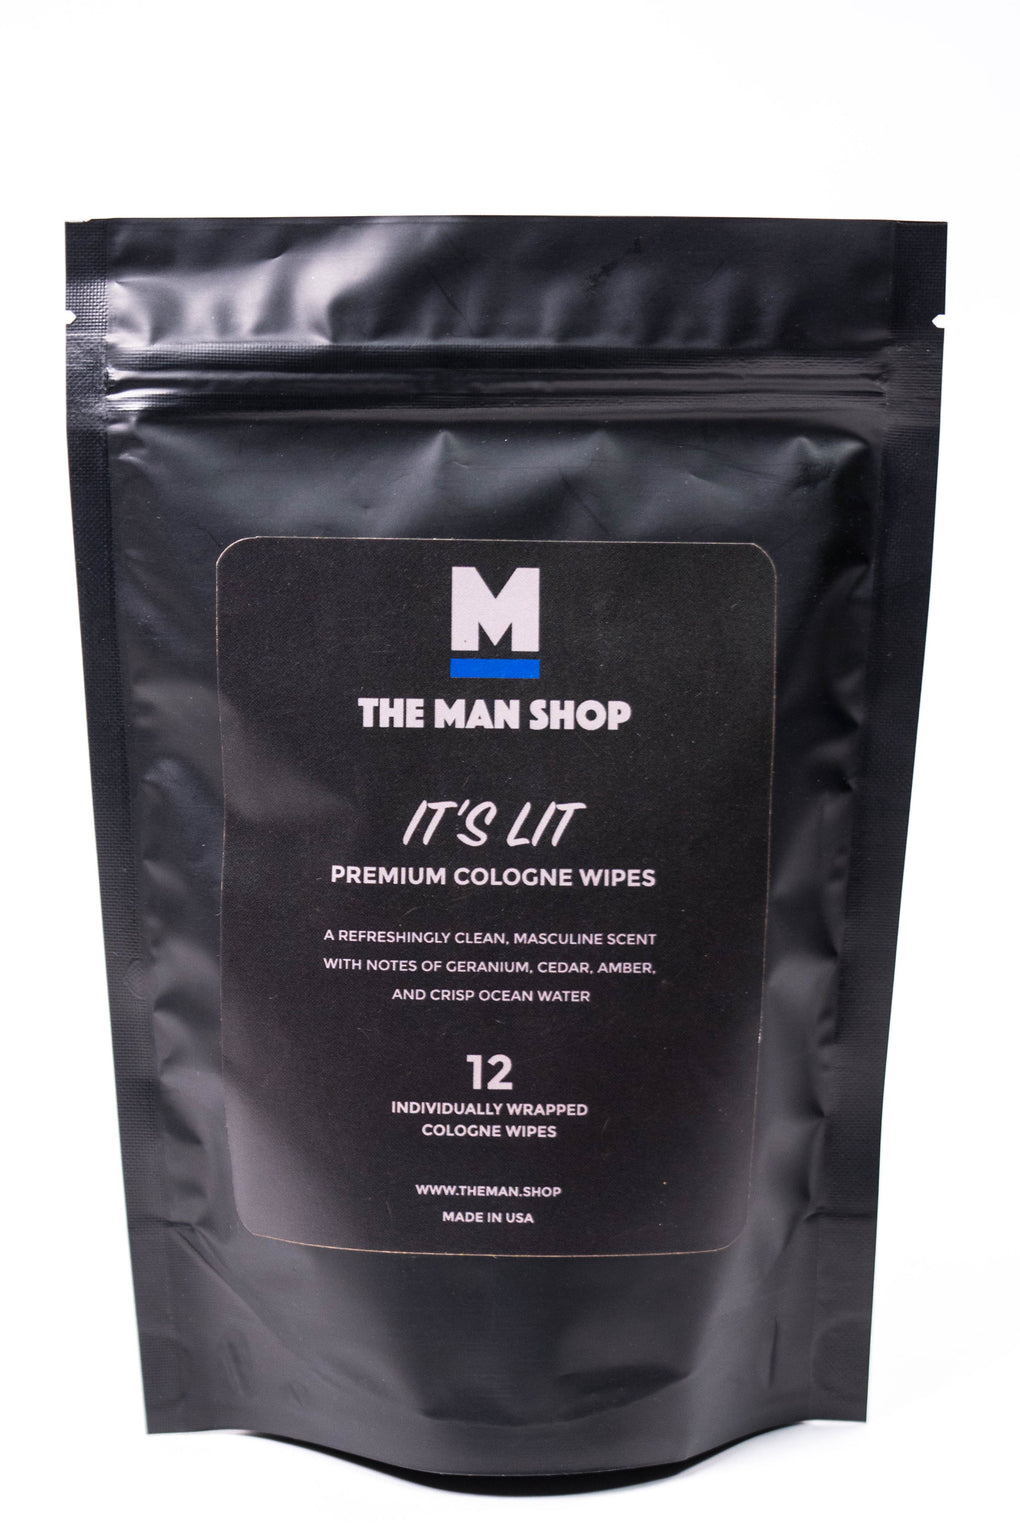 The Man Shop It's Lit Cologne Wipes at Consigliere